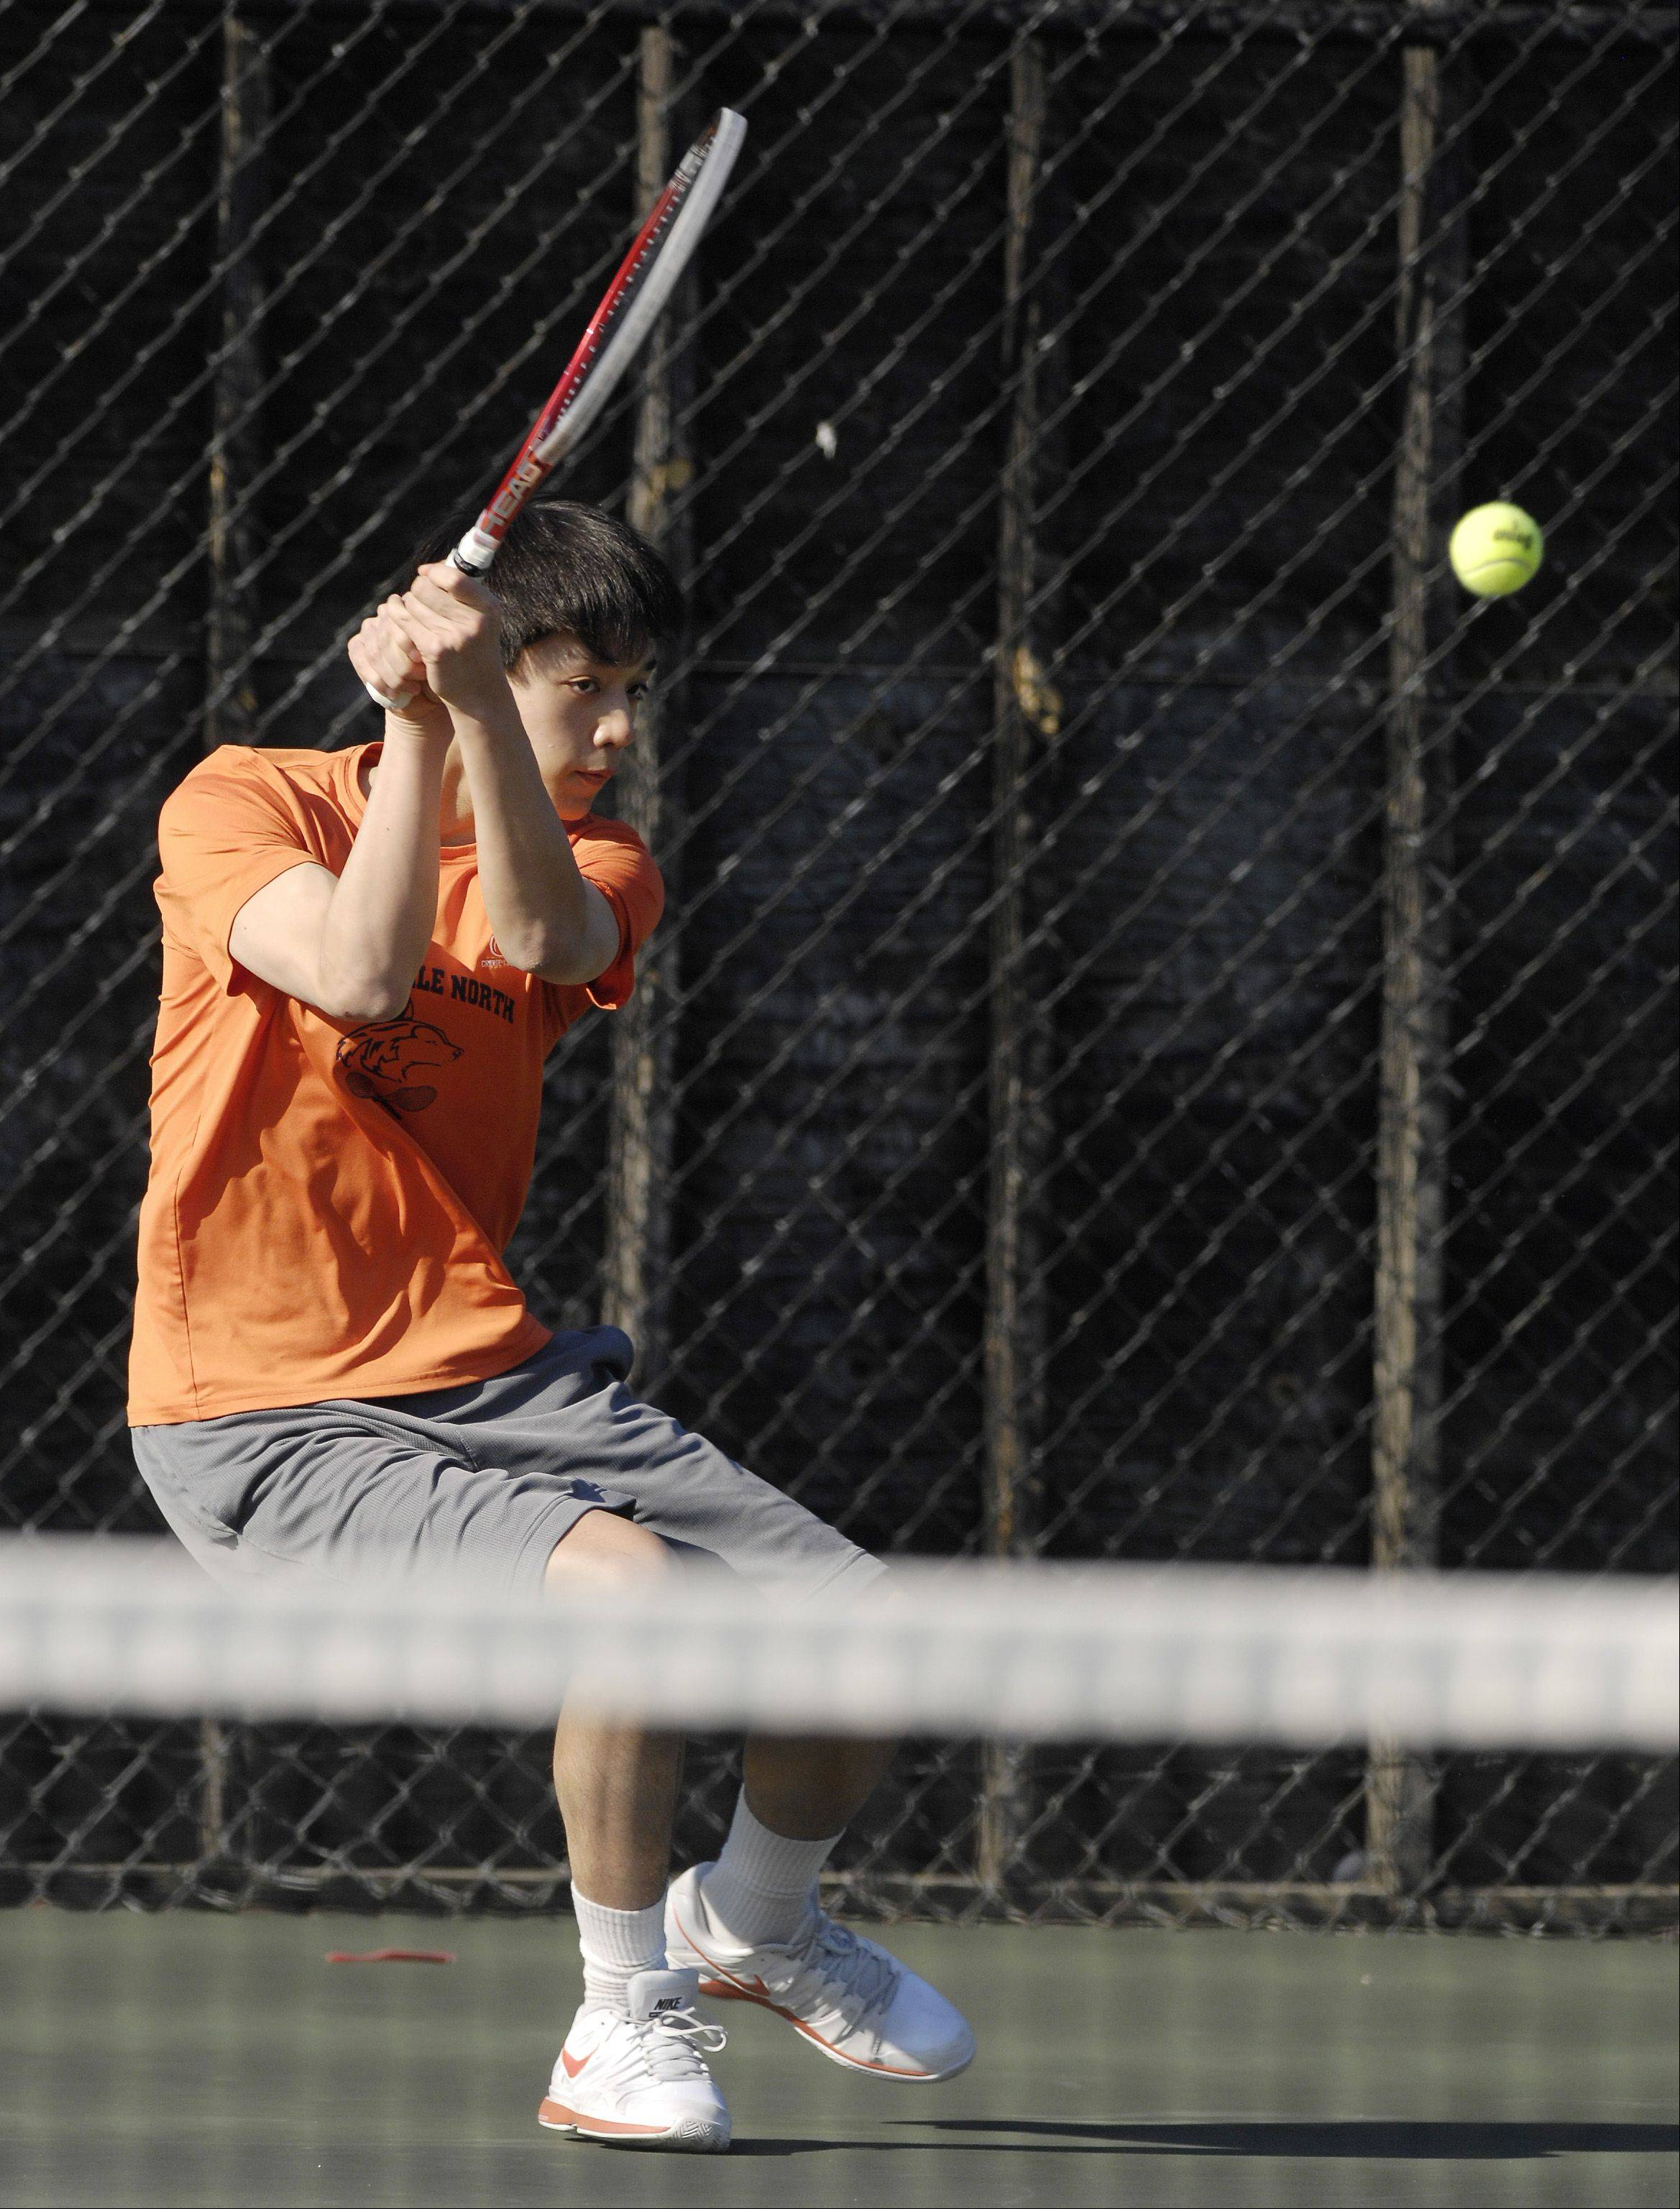 Terrance Chen of Naperville North plays against Nate Dell of Glenbard West during a boys varsity tennis match at West, Thursday.